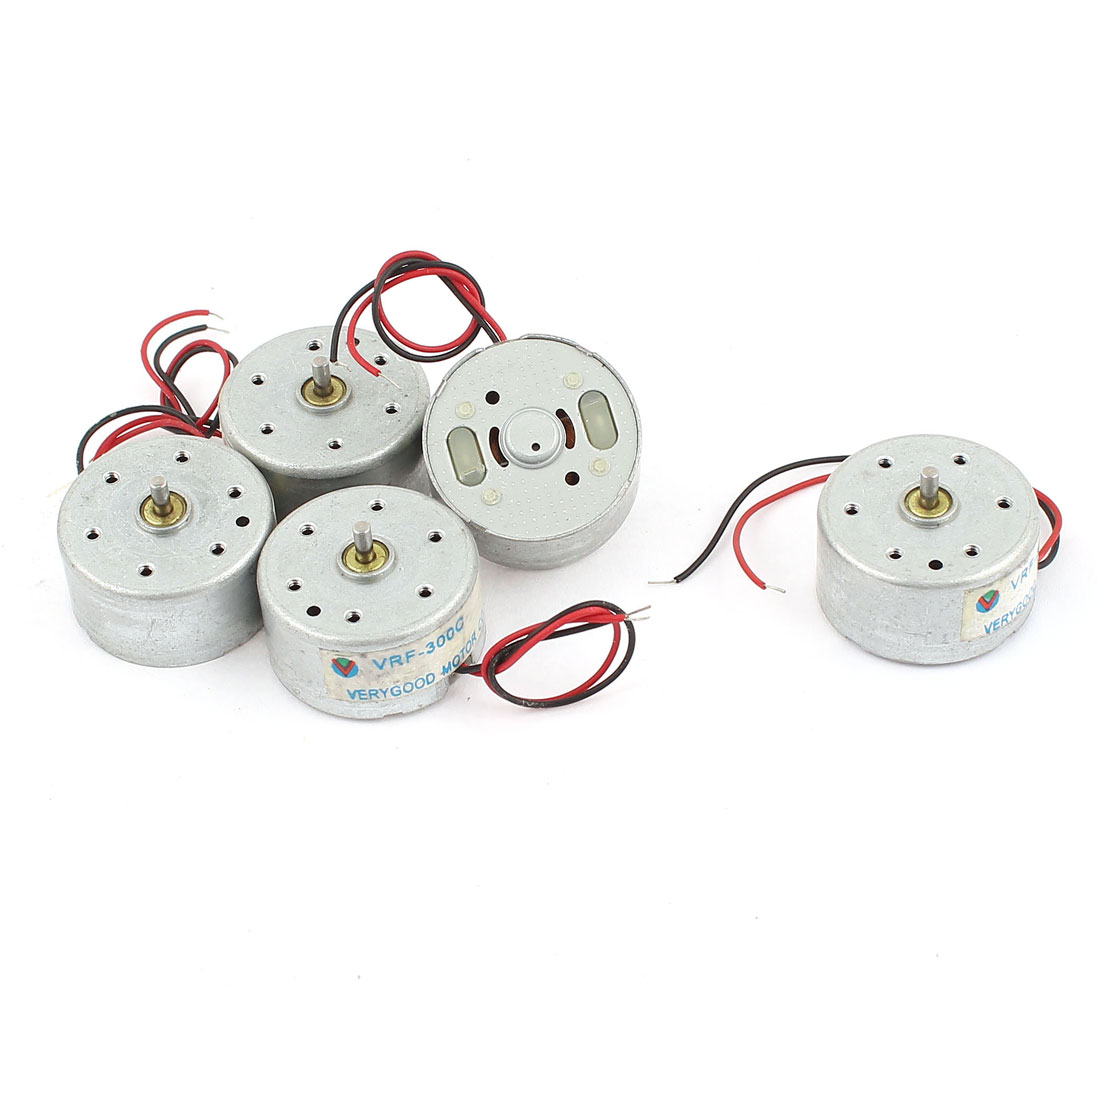 5 Pcs 10000RPM 25mm Diameter Wired Mini Motor DC 6V